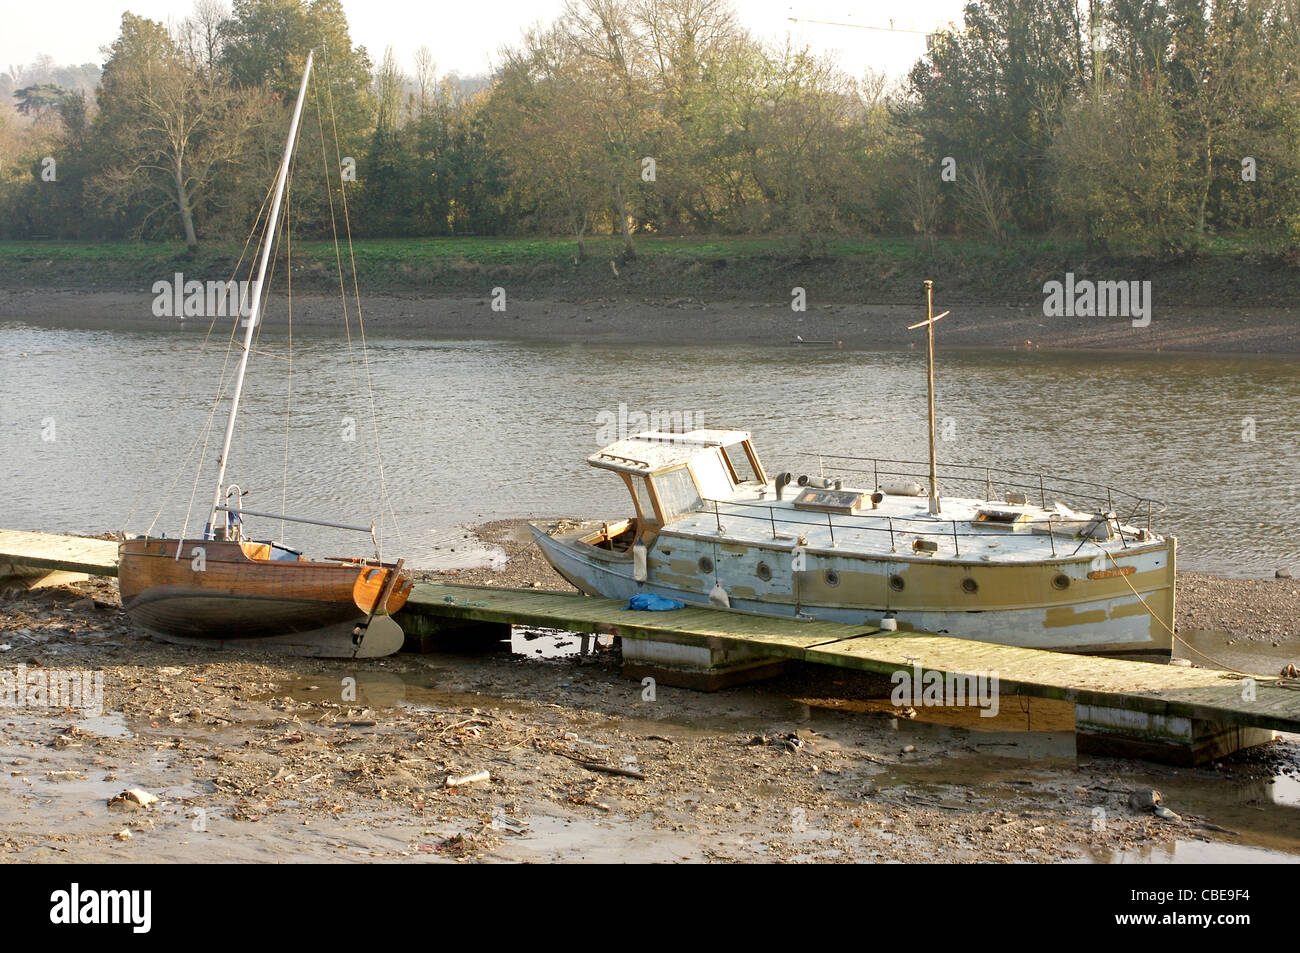 Two boats aground during low tide along the River Thames in Richmond Upon Thames, West London, England - Stock Image